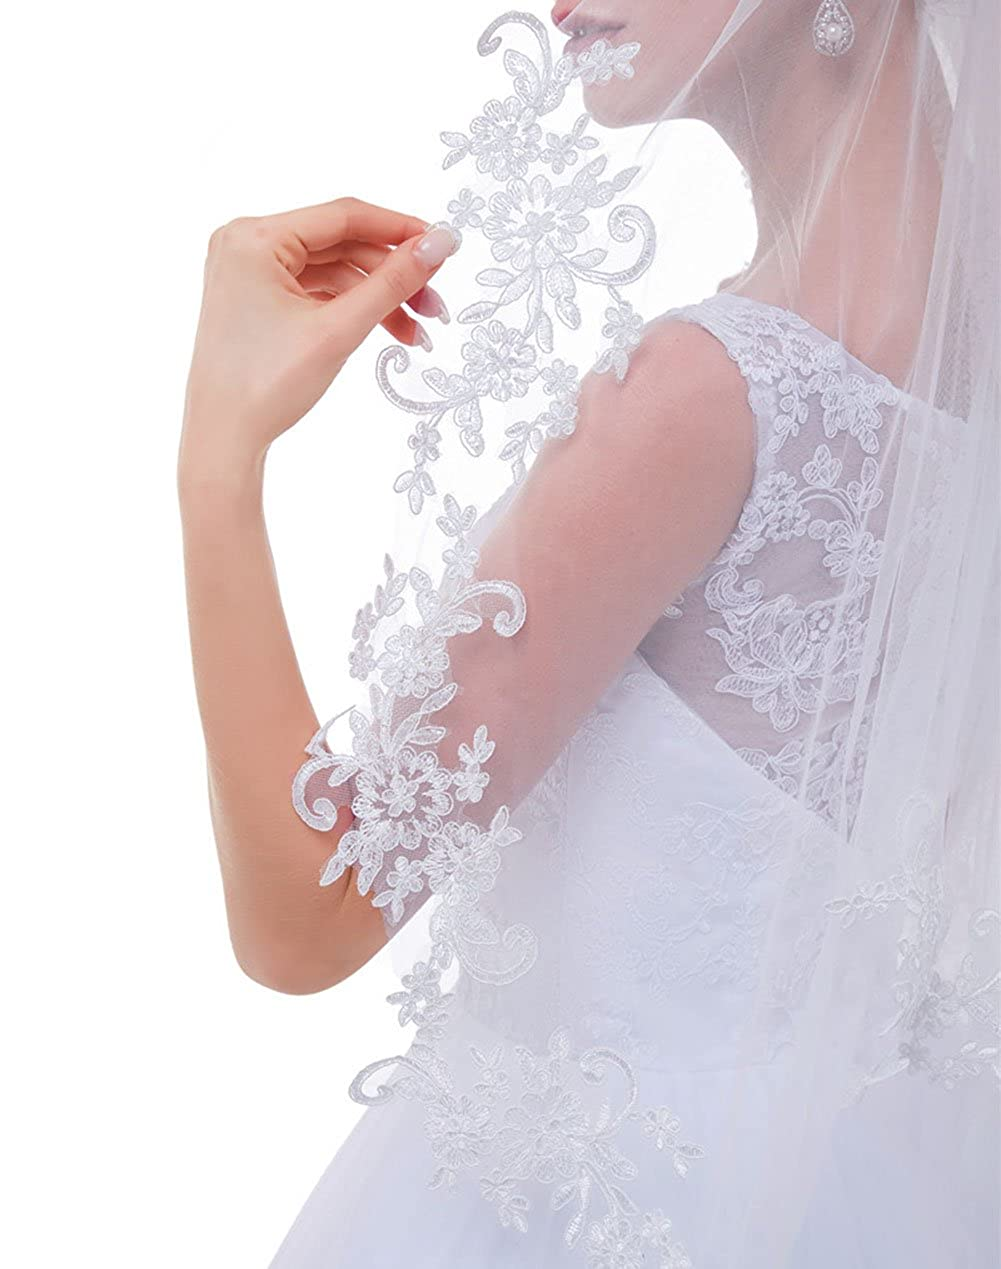 AIBIYI 1 Tier 2 Tier Lace Fingertip Veils for Brides with Comb ABY-V10